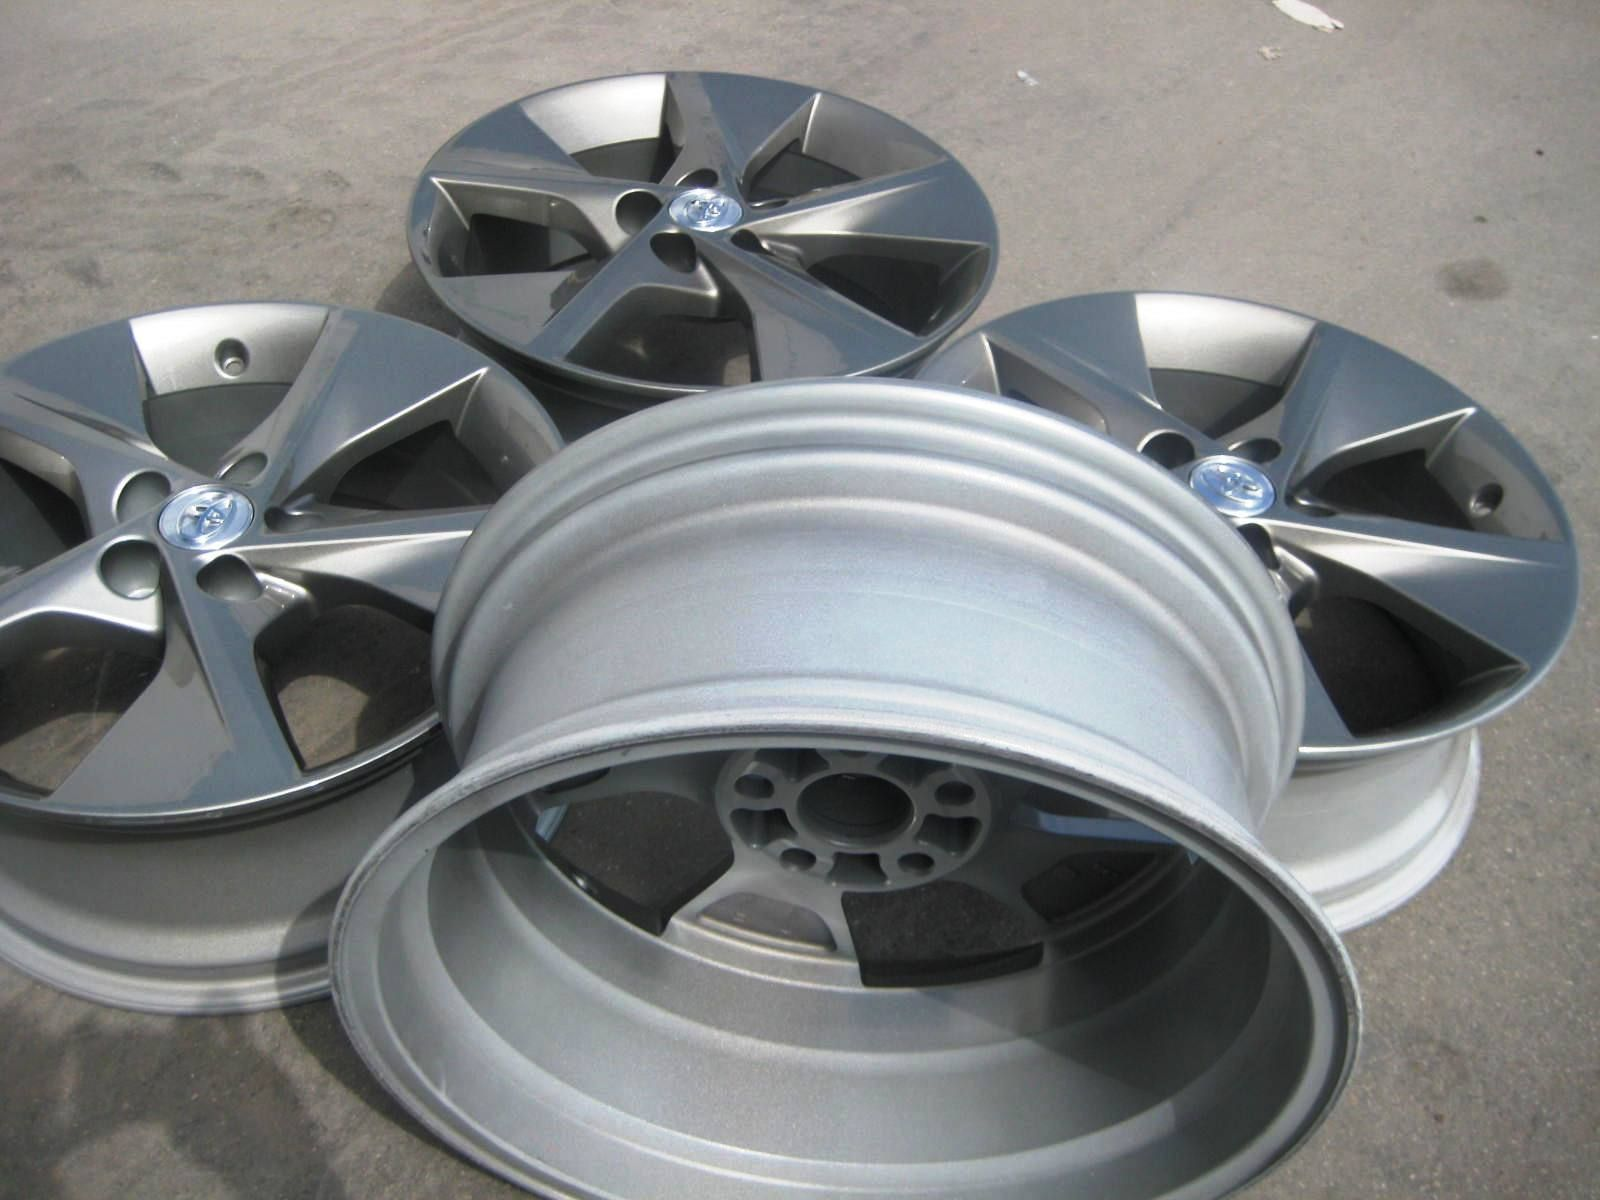 18 FACTORY TOYOTA CAMRY OEM WHEELS RIMS IS300 IS250 GS430 IS350 SC430